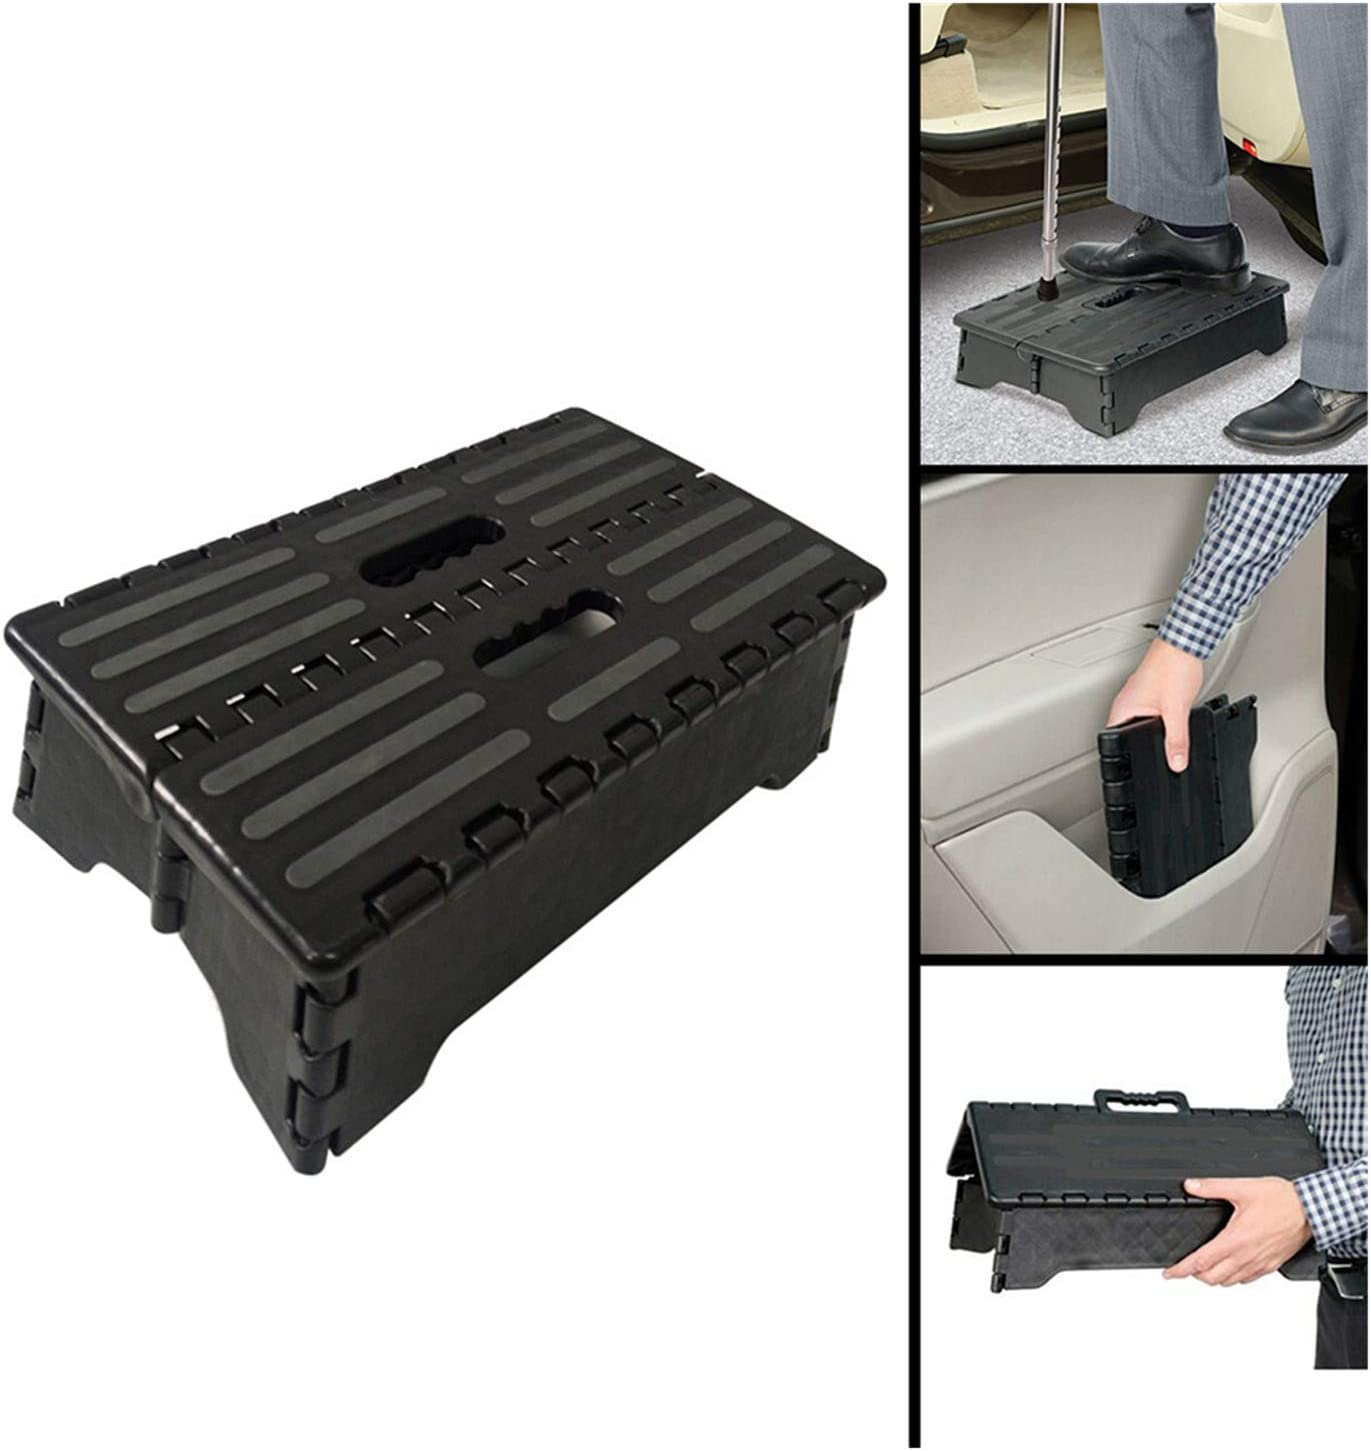 Wtsup service trust Folding Step Stool Super One Adults Foot Strong